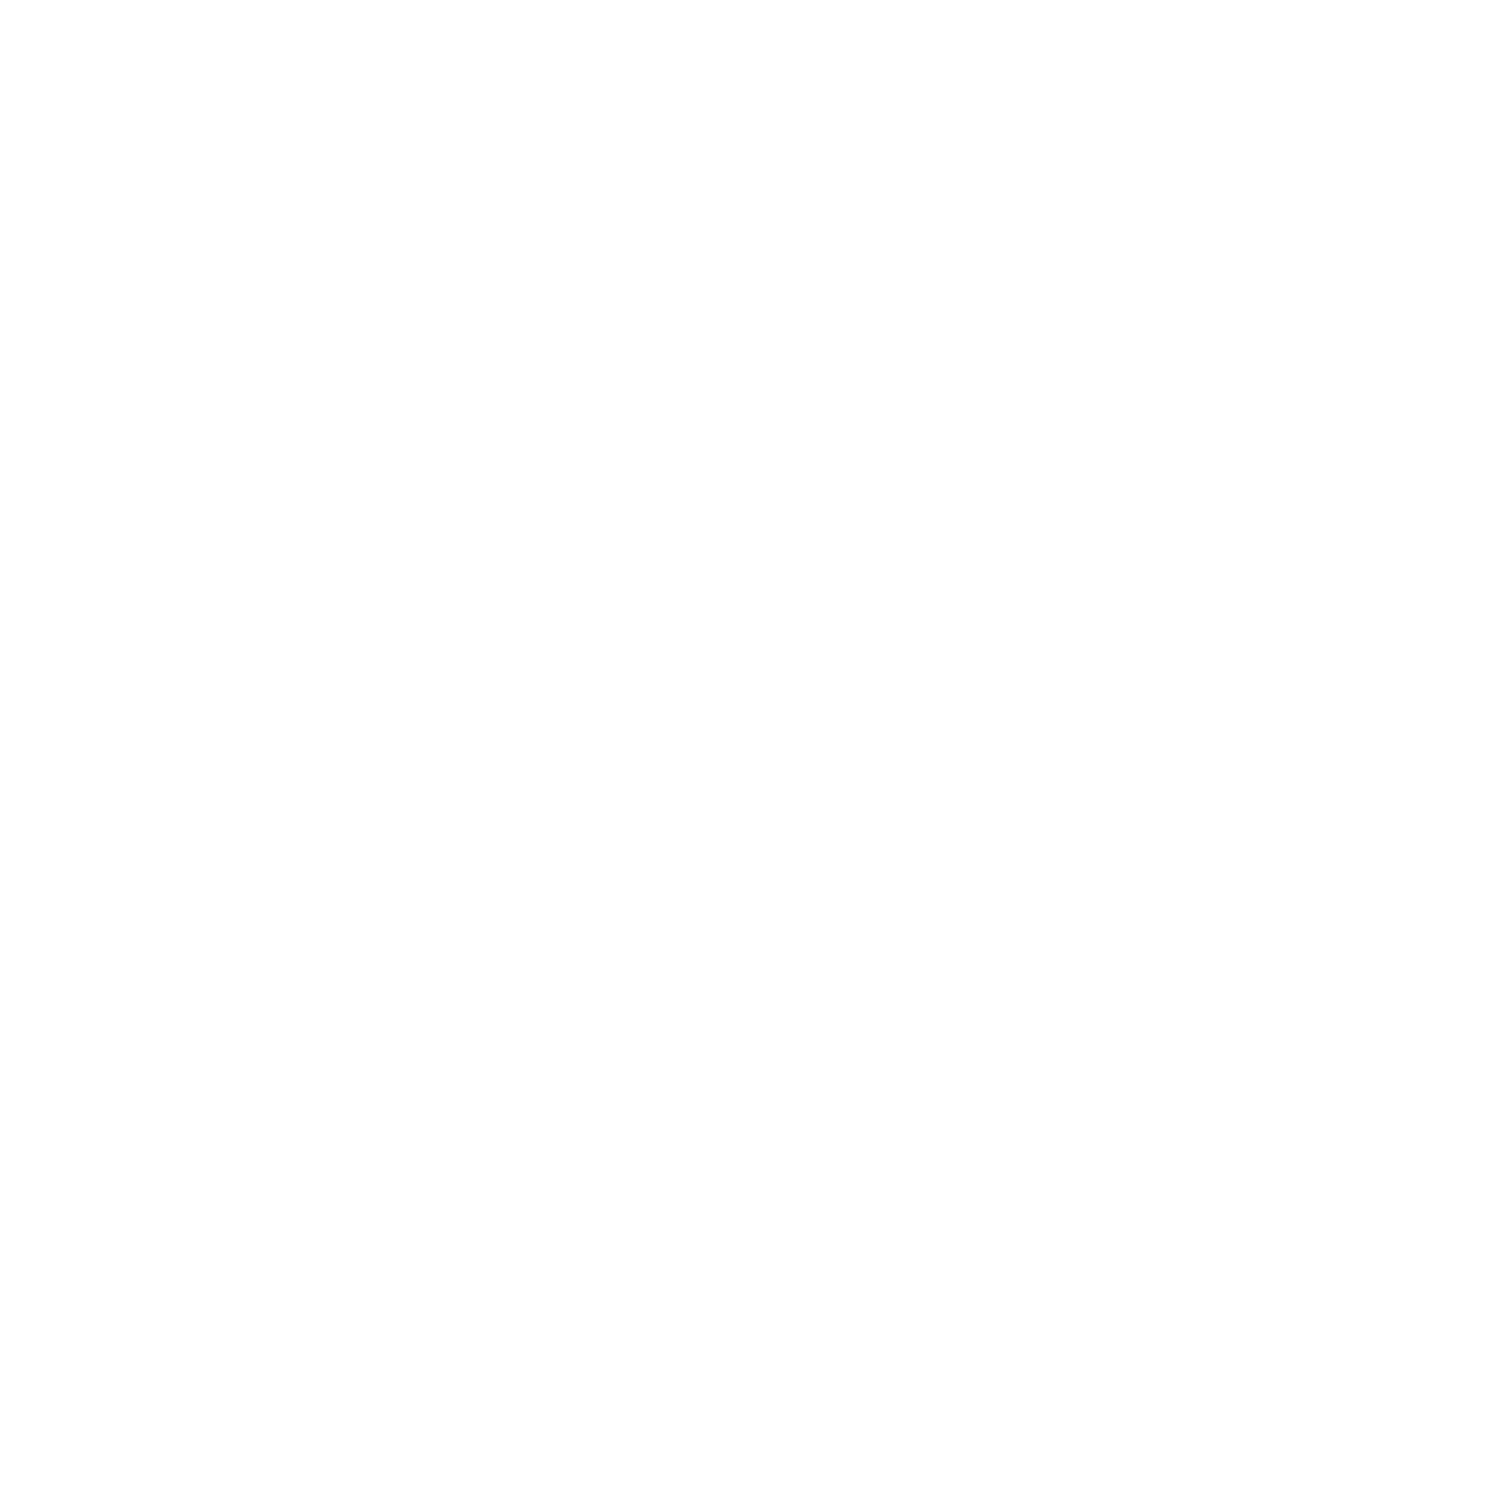 Flamingo & Co